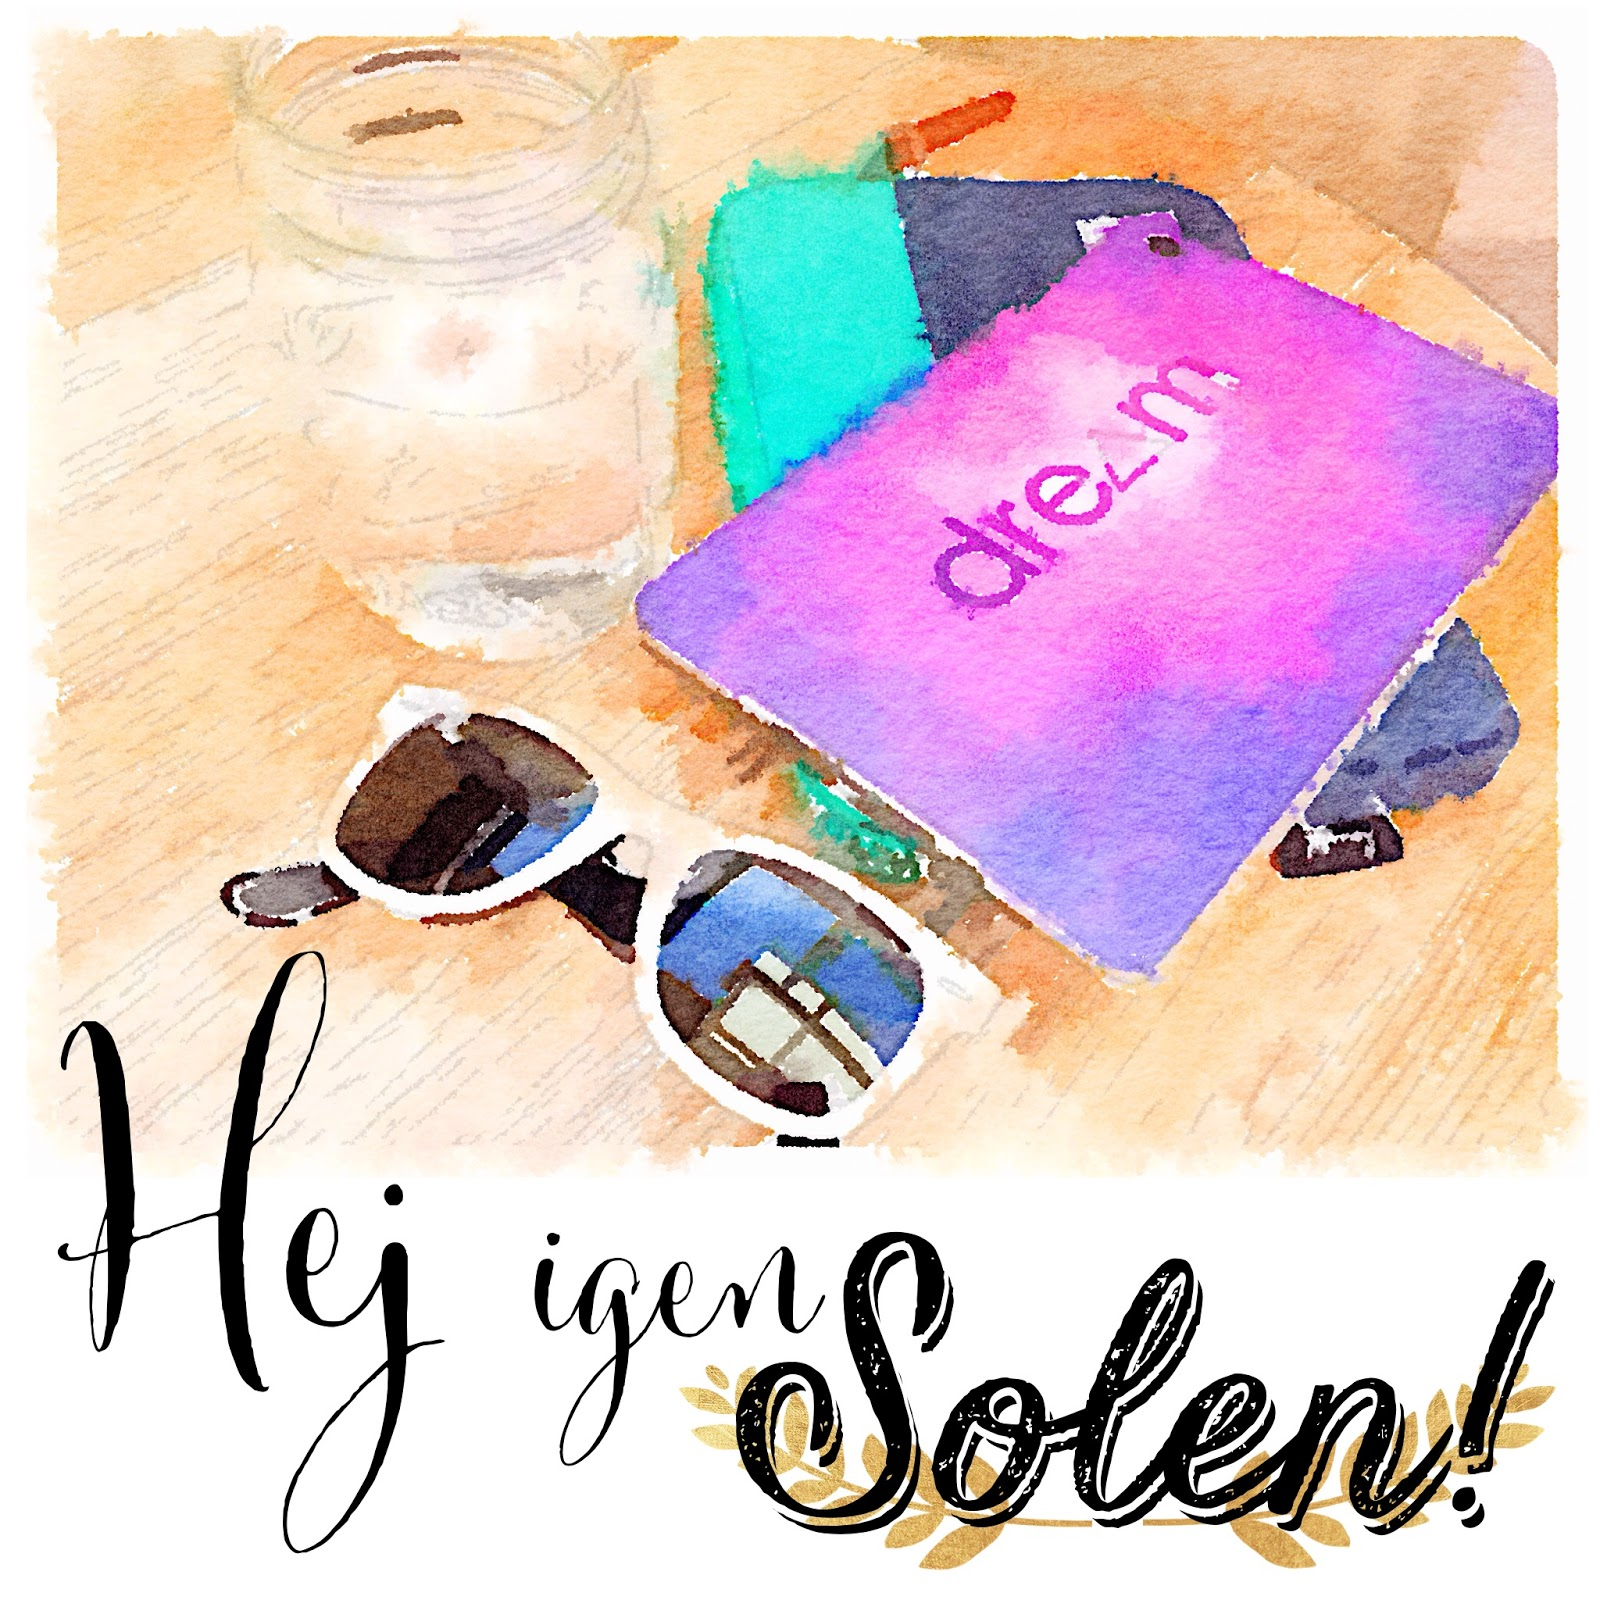 waterlogue app, solsken, plugga, ipad mini, ray ban wayfarer, mason jar